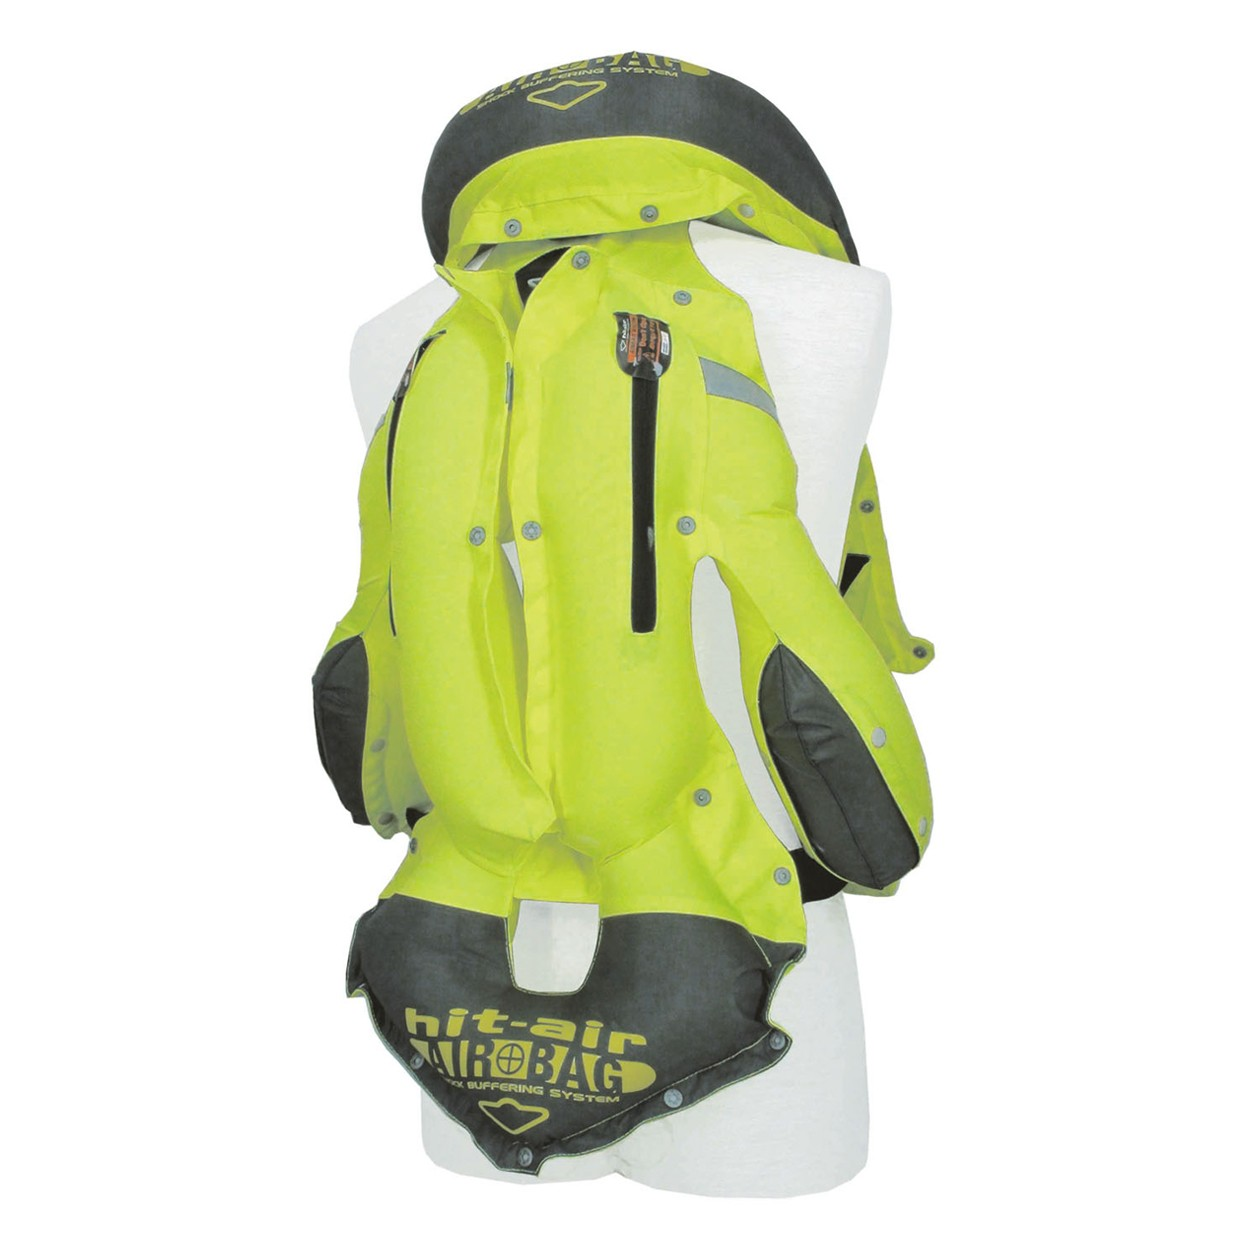 Hit Air Inflatable Air Vest Wychanger Barton